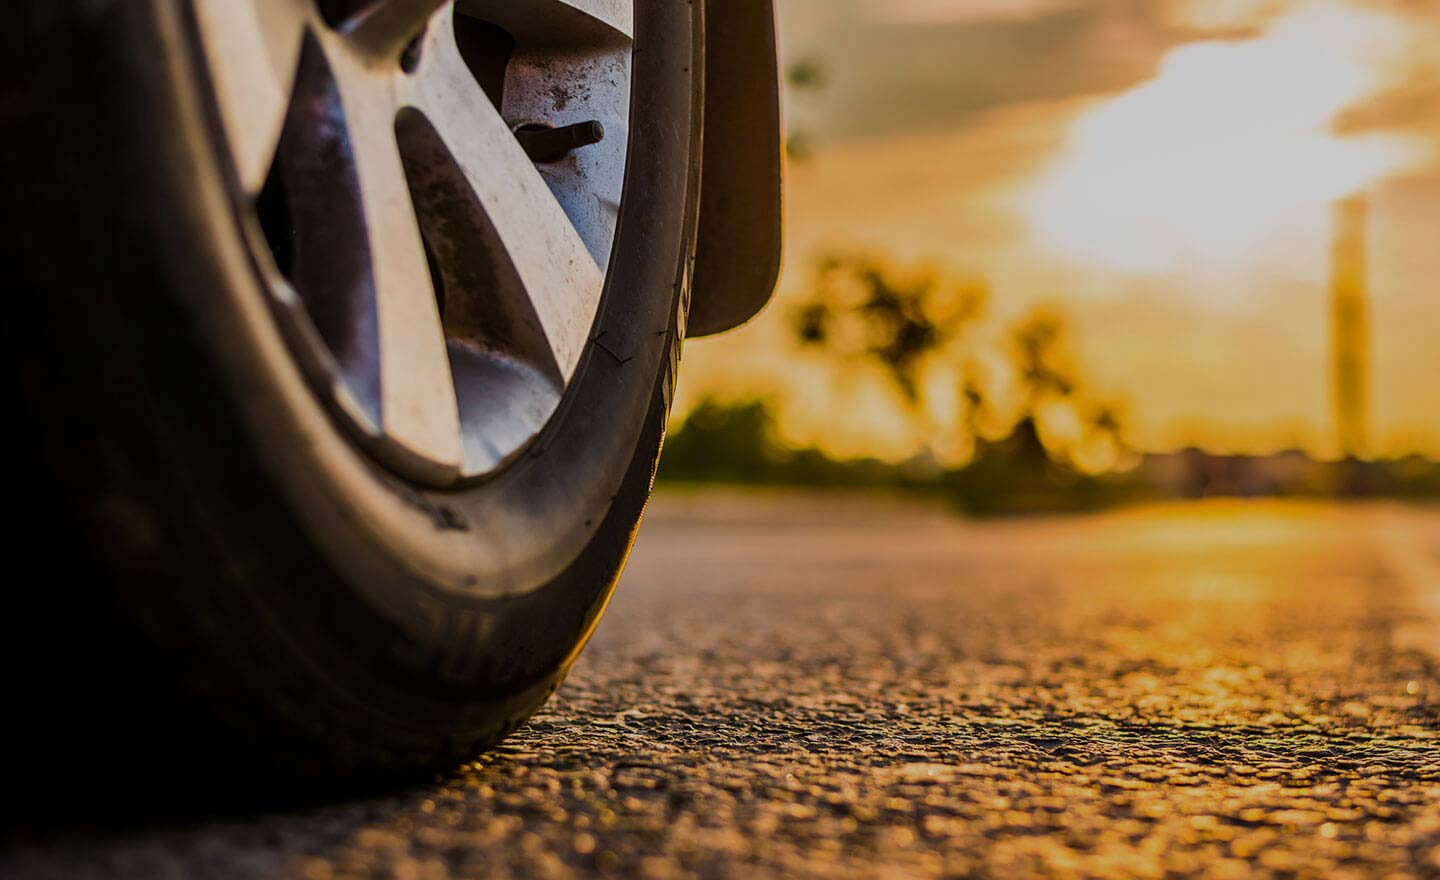 WHY DO CAR TYRES CRACK?